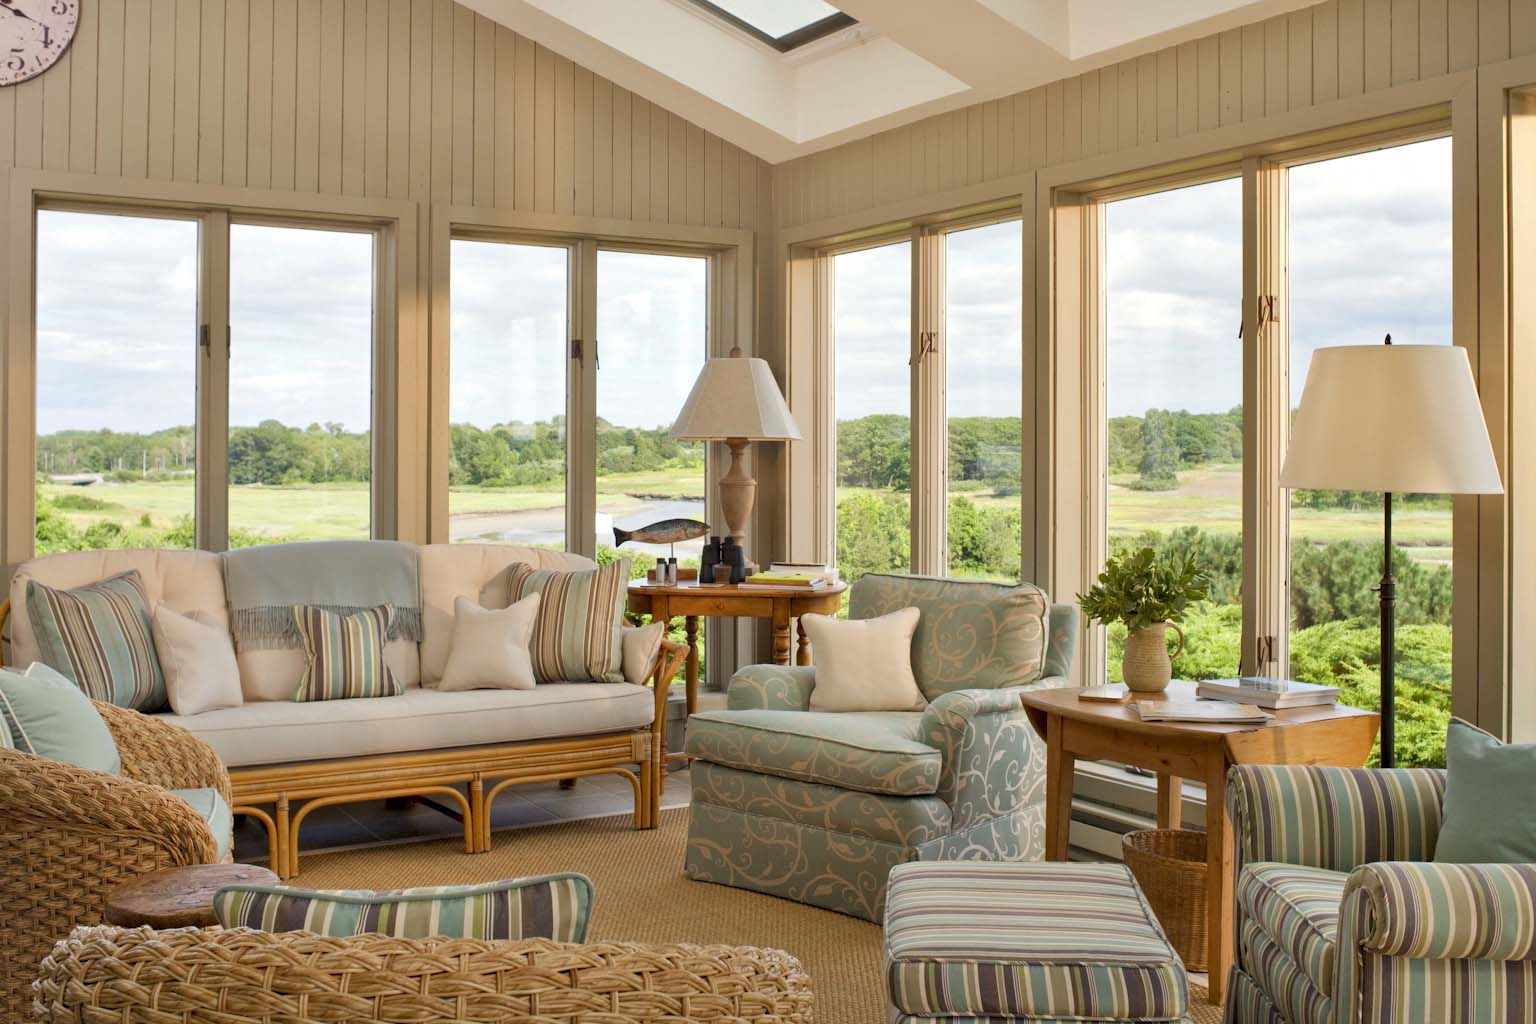 Adorable Interior Country Modern Neutral Beige Brown